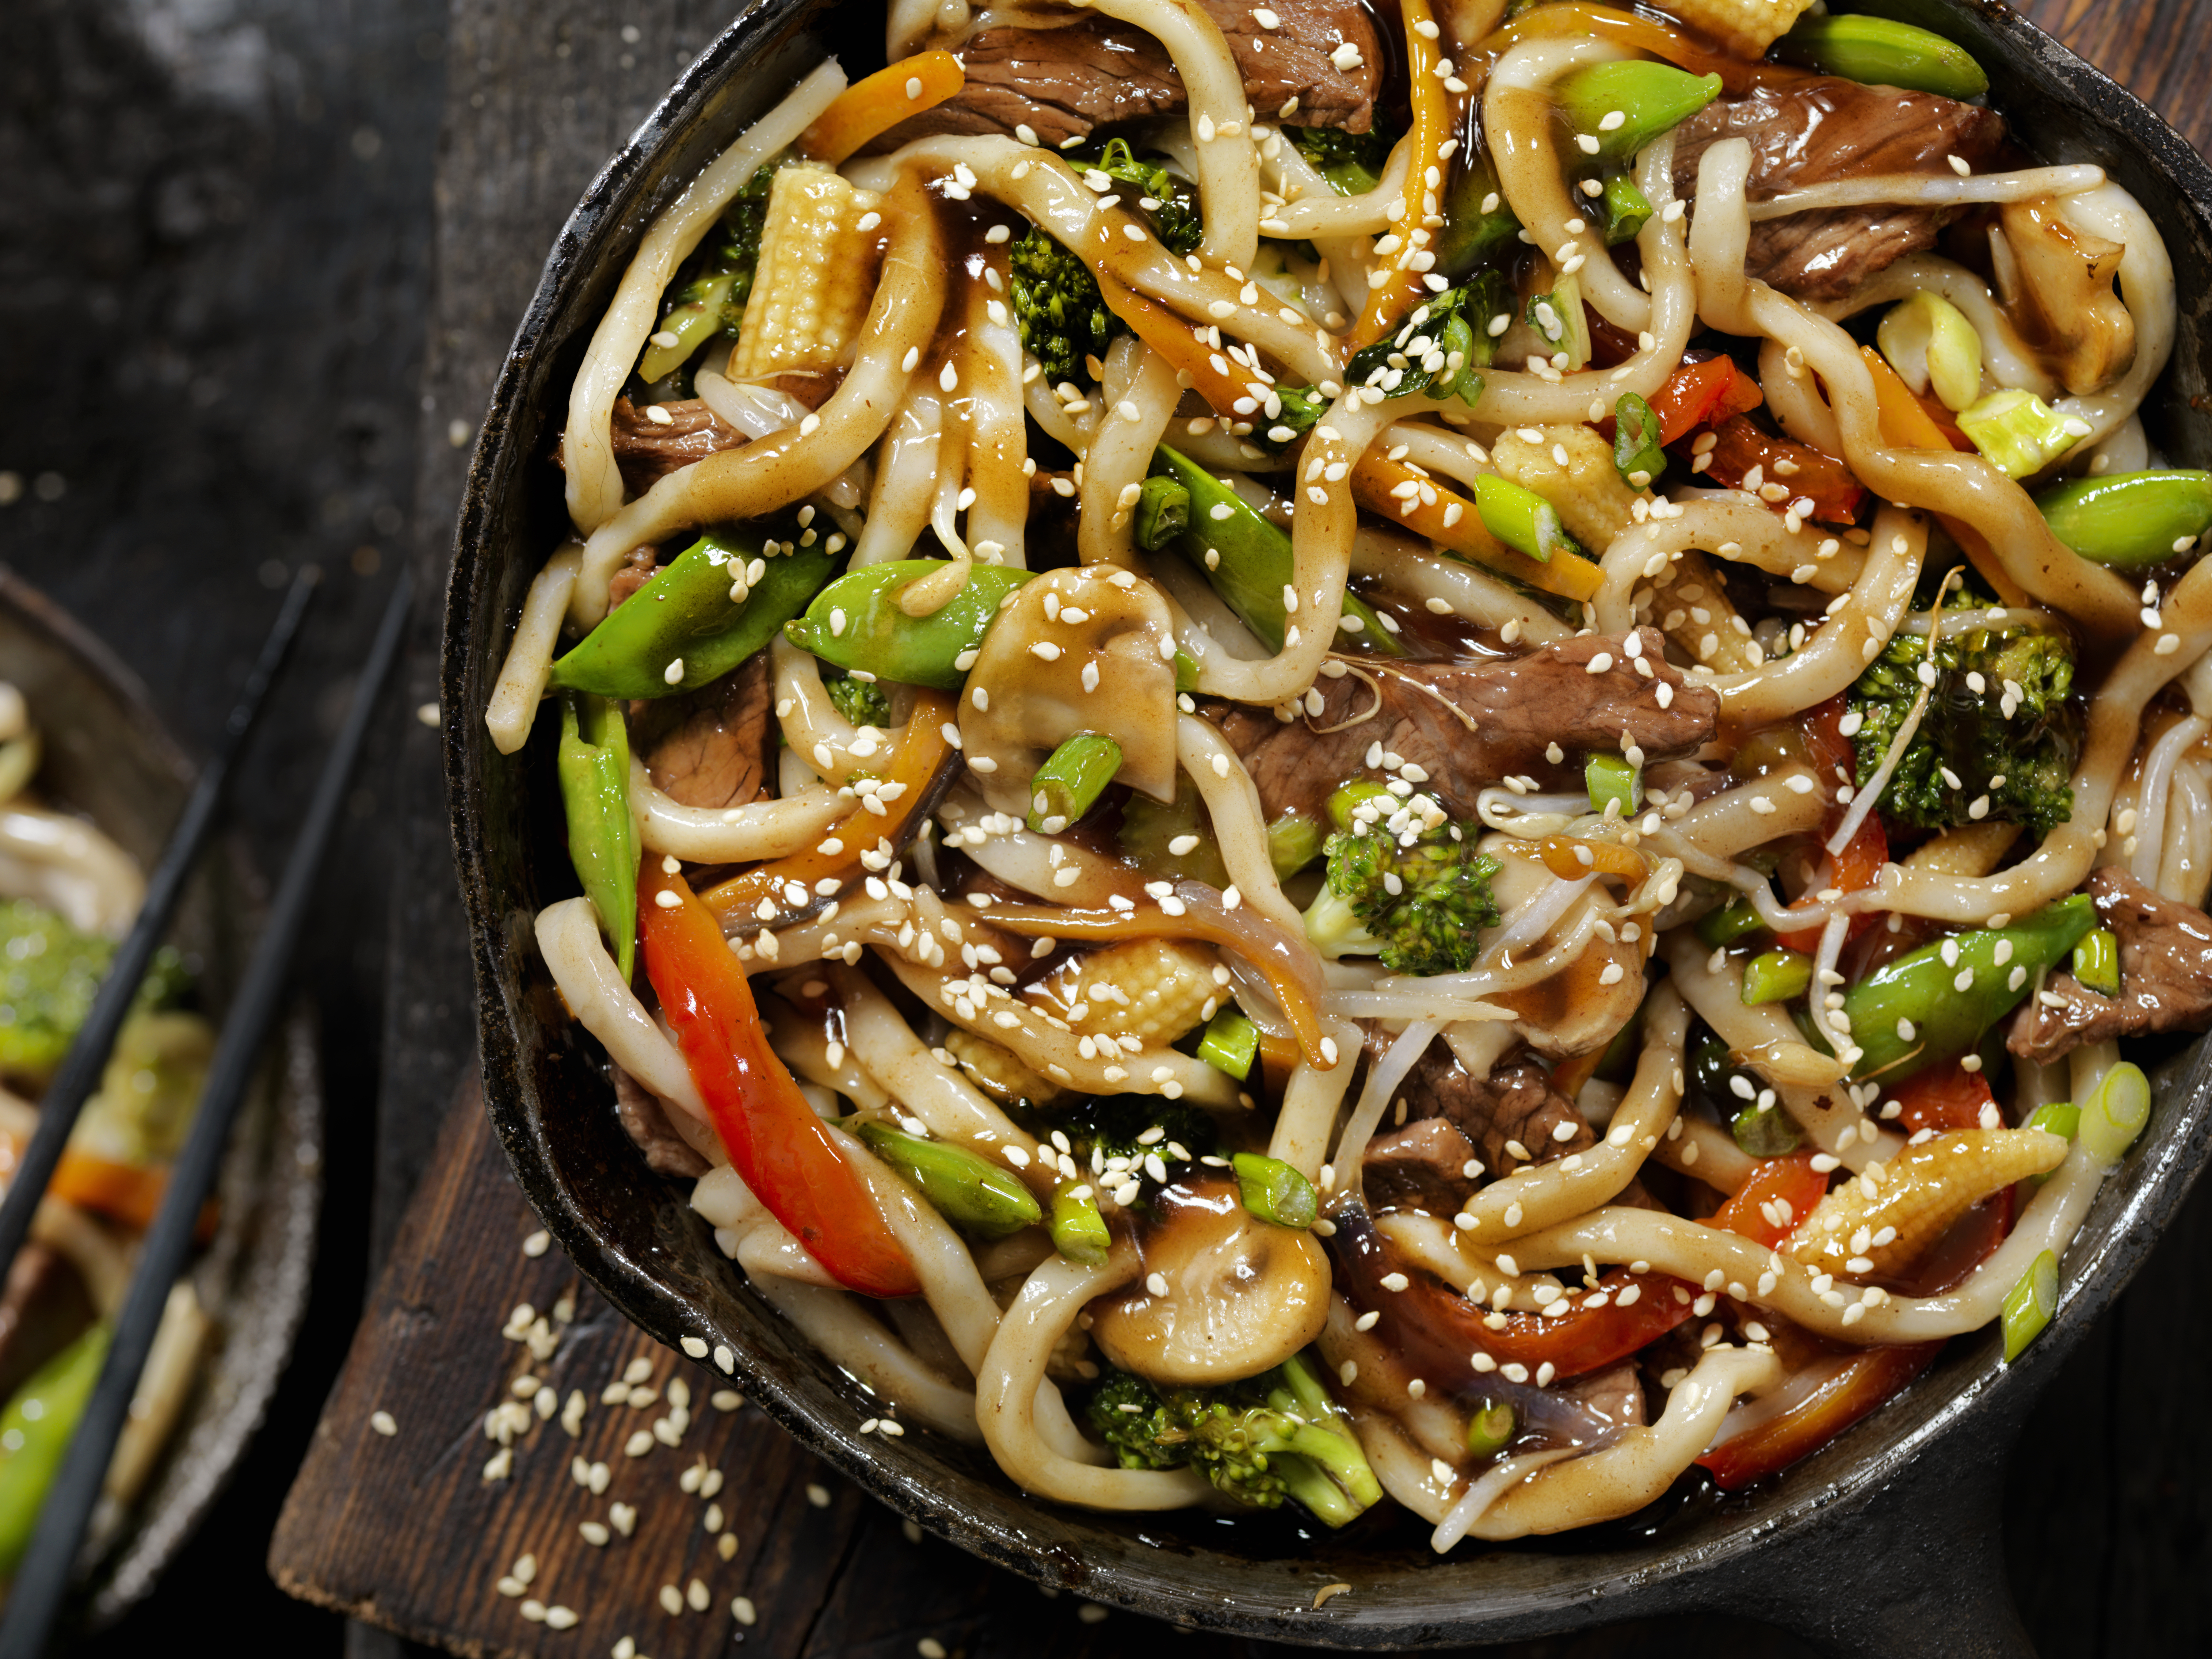 Beef and Broccoli With Udon Noodle Stir Fry